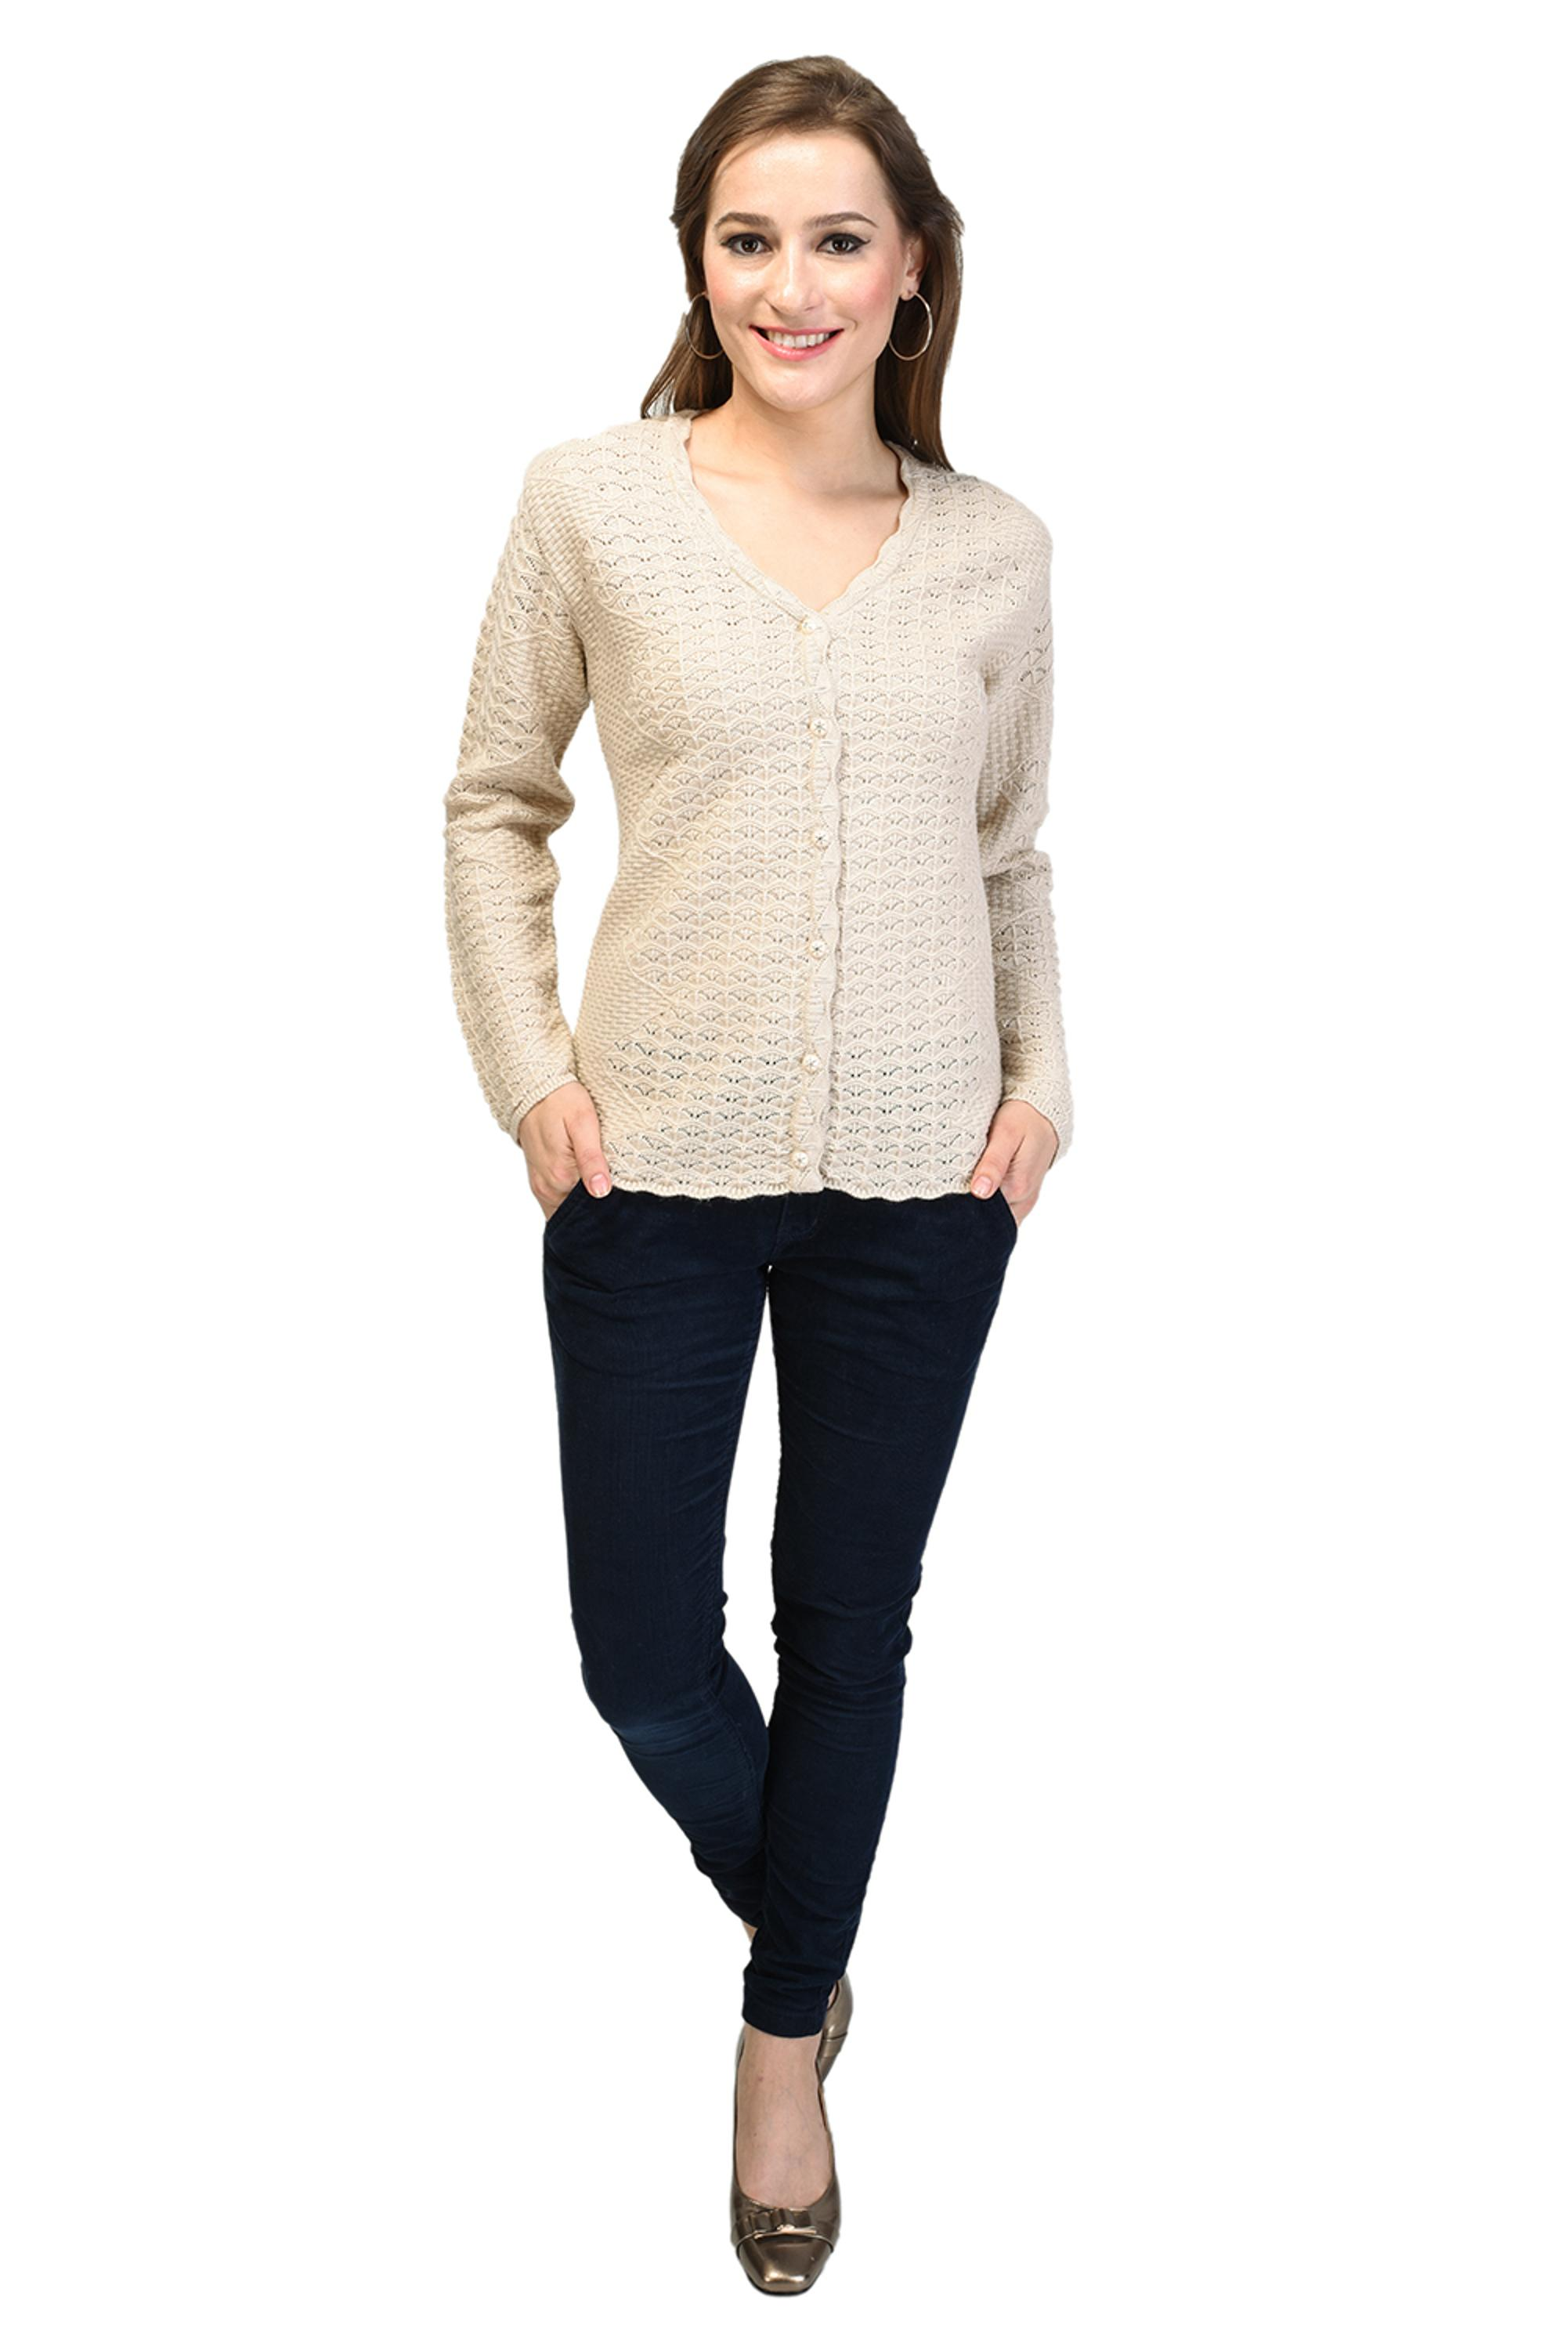 Good Quality Ladies Sweater Cardigan-1502 light faun colour